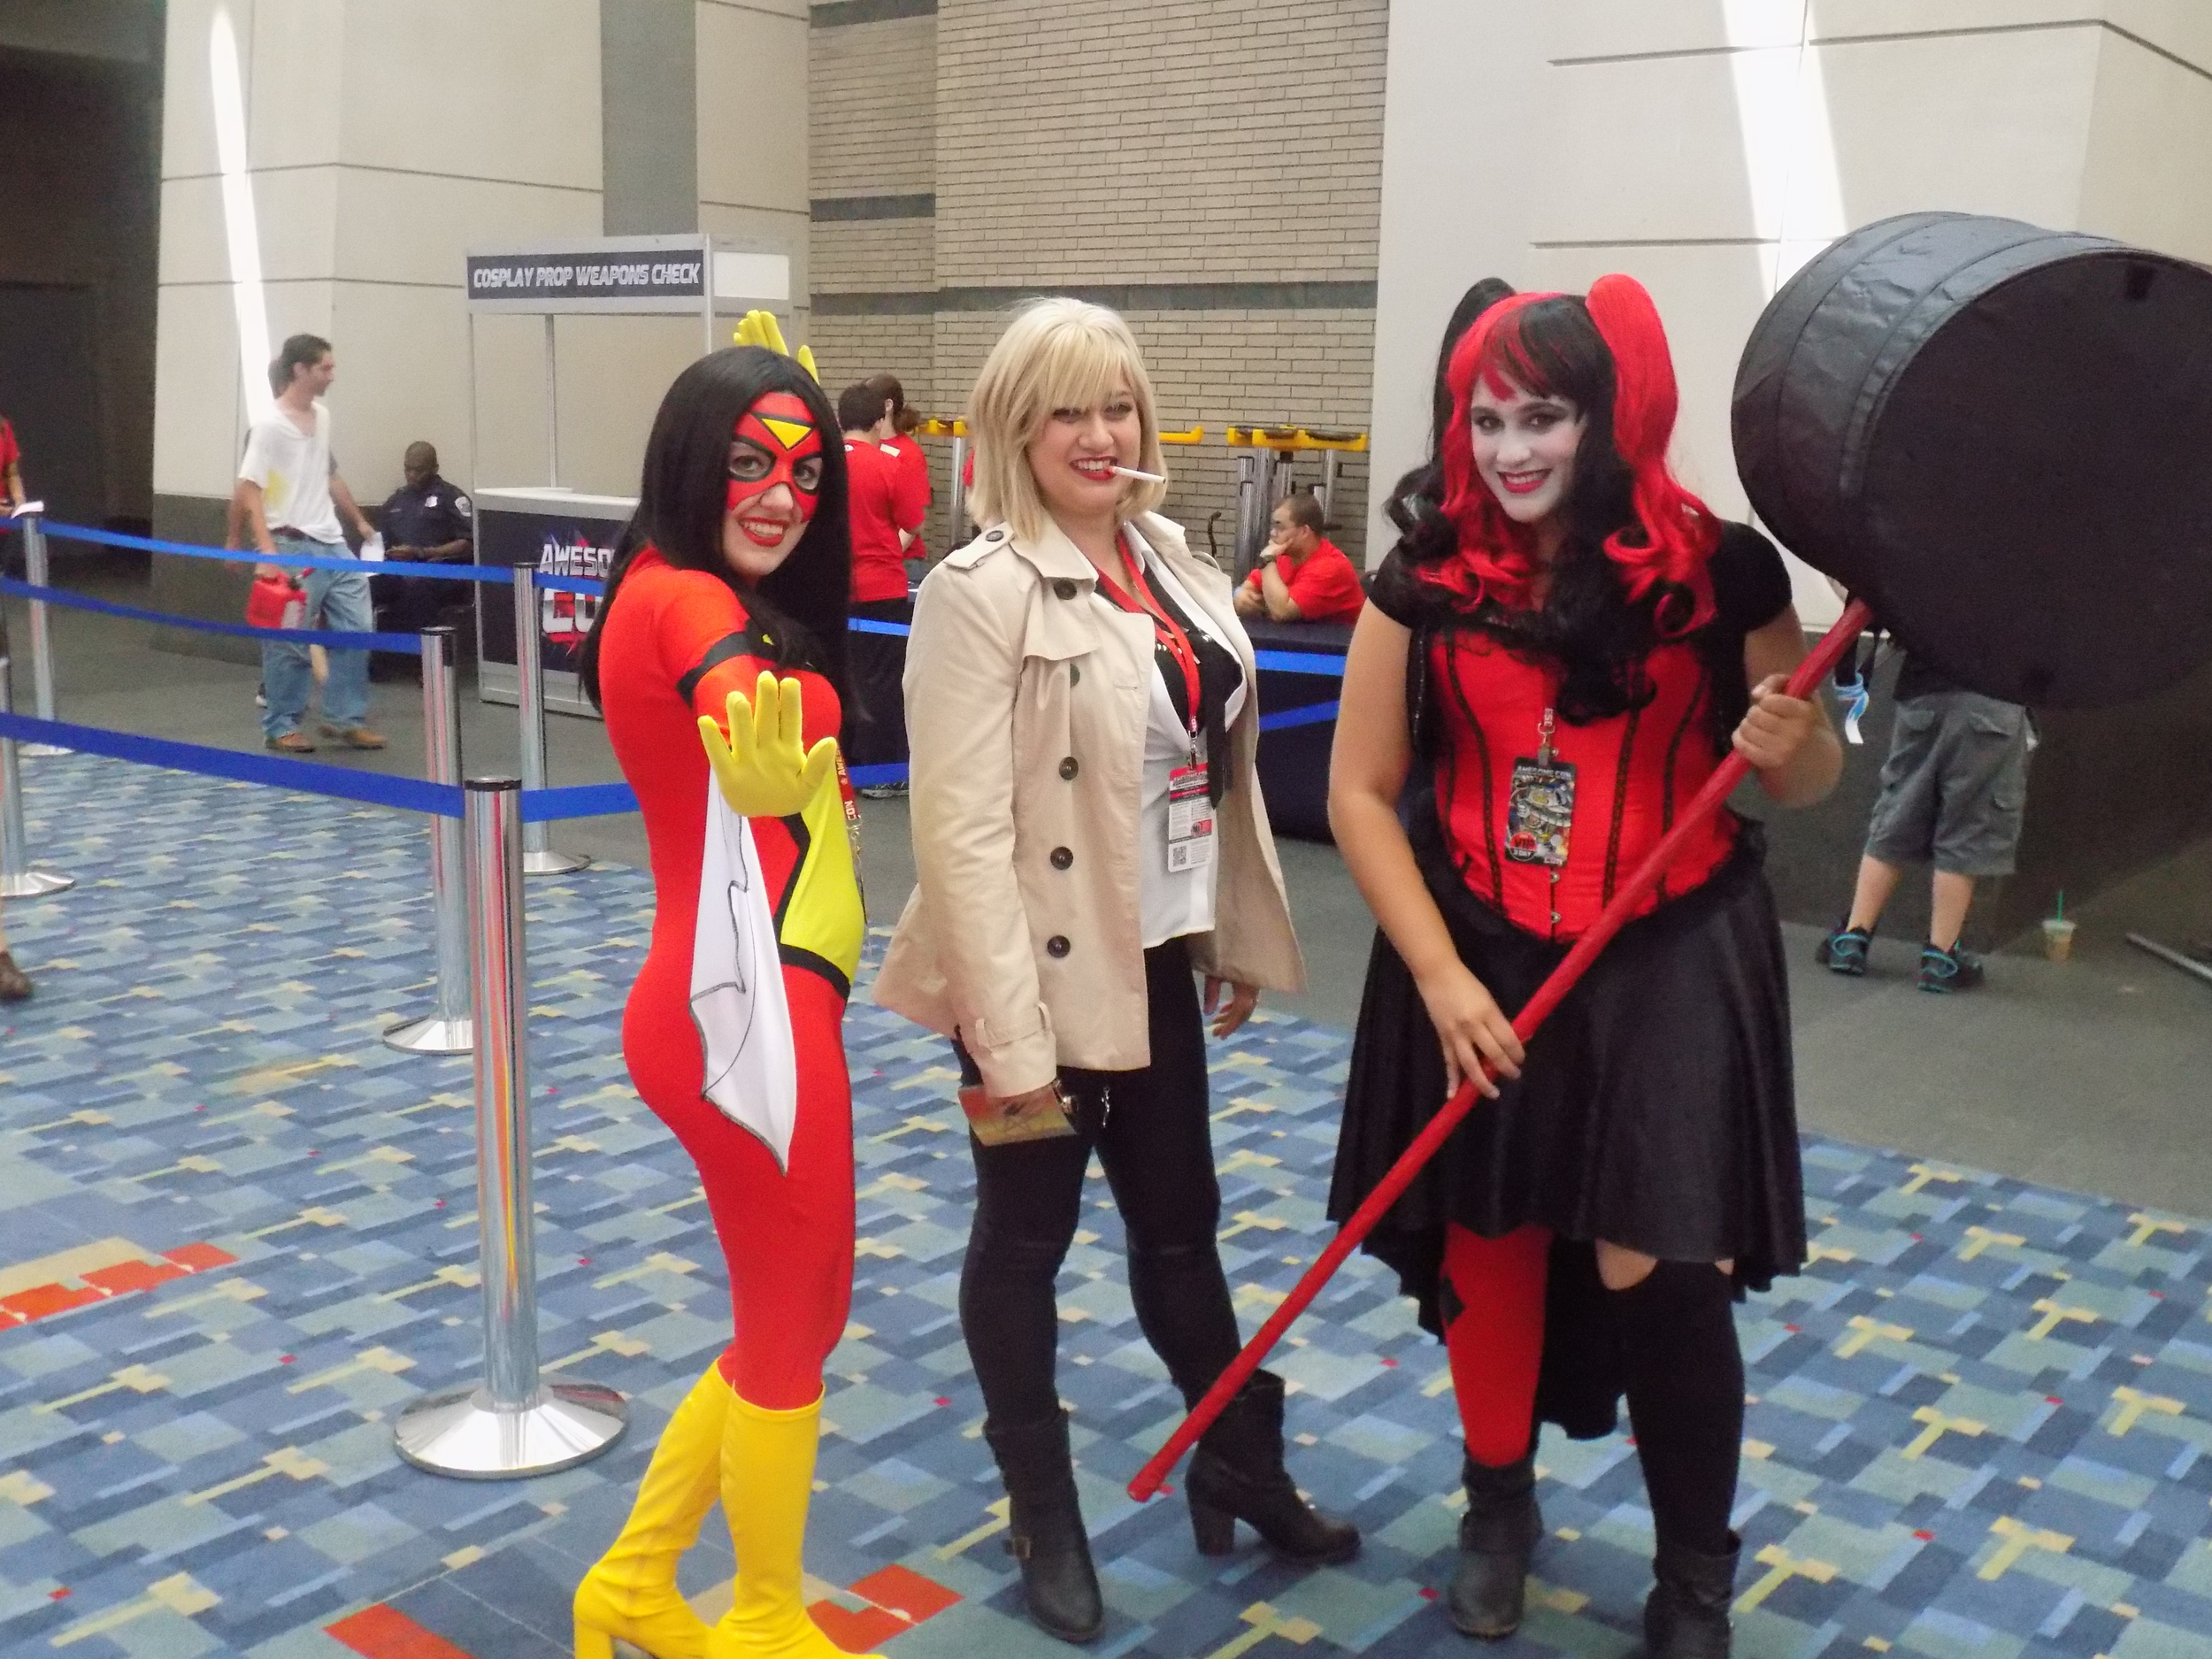 Awesome Con 2015 034.JPG